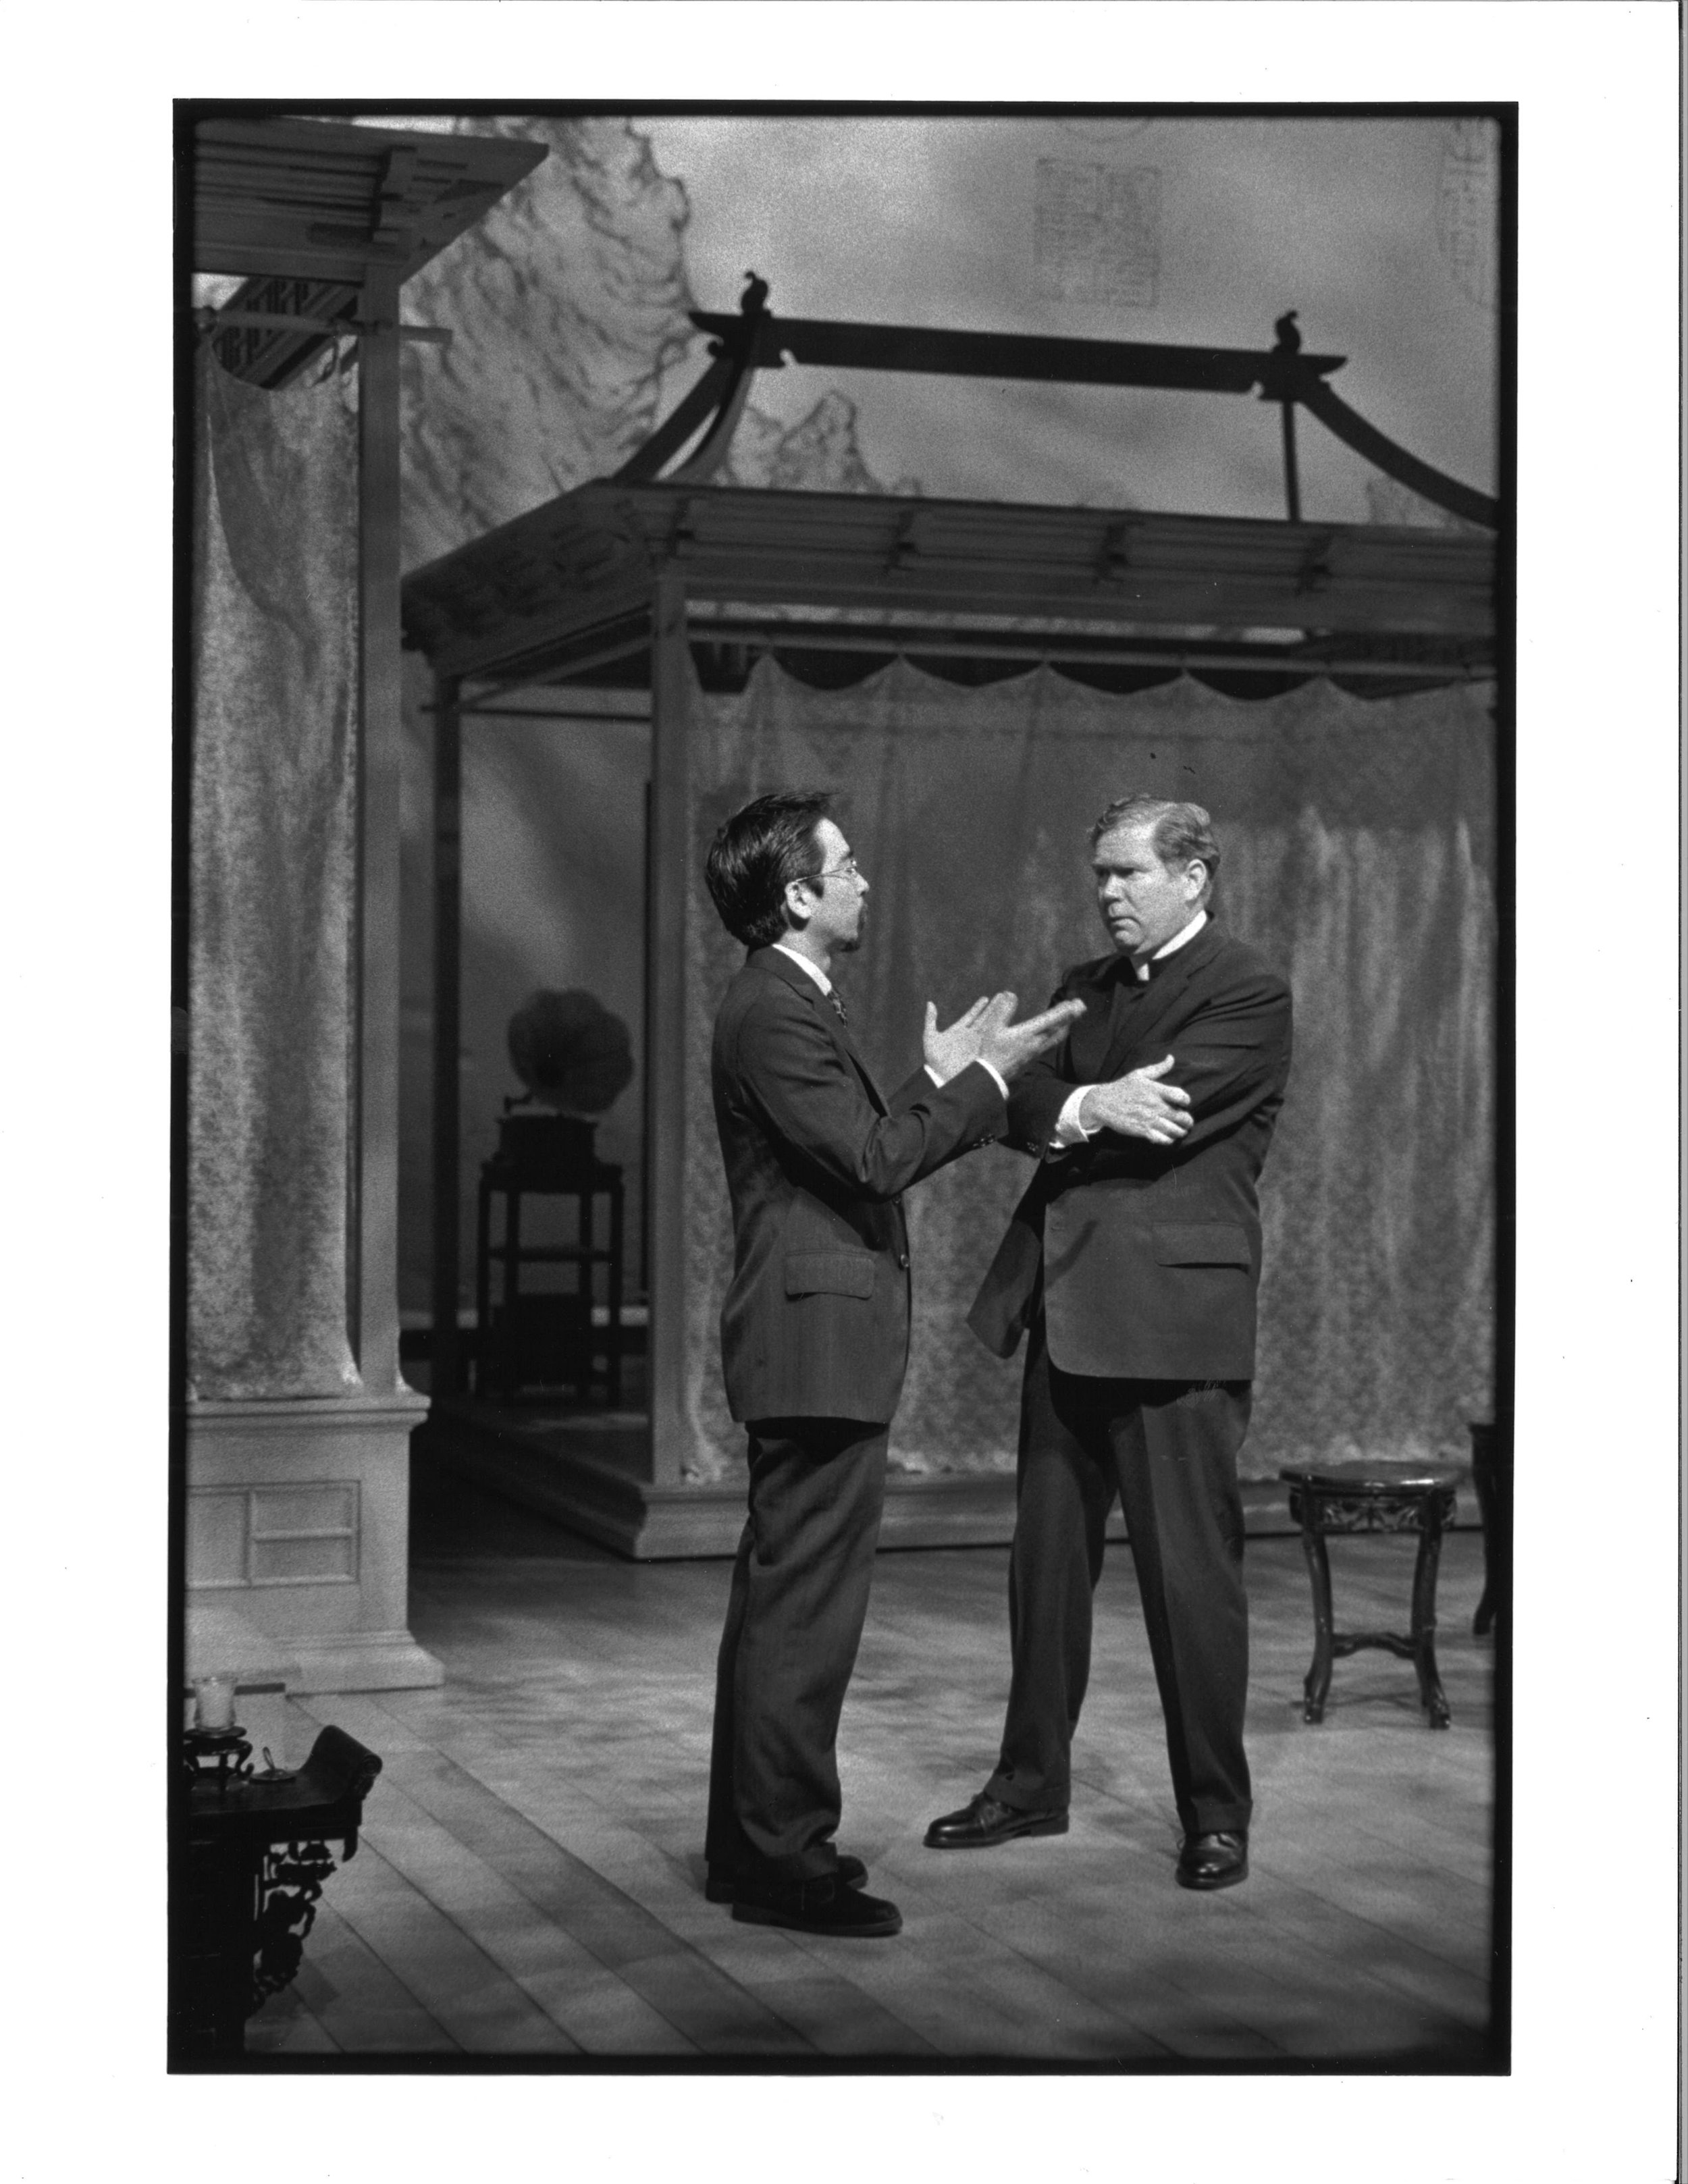 Stan Egi and John Christopher Jones Photo by Michal Daniels, from The Public Theater production in 1996.